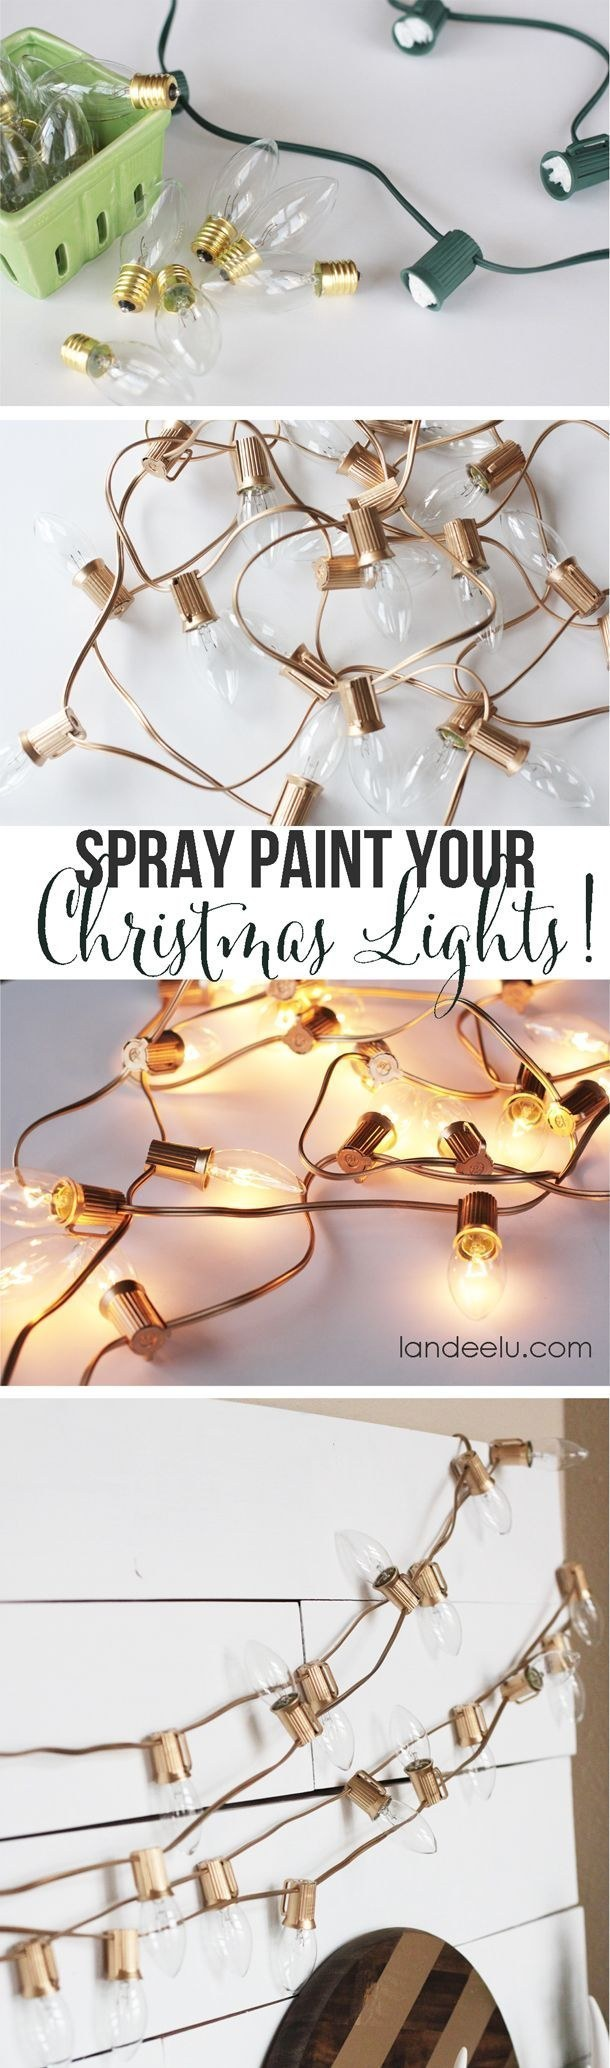 33 awesome diy string light ideas string light diy ideas for cool home decor spray painted christmas lights are fun for solutioingenieria